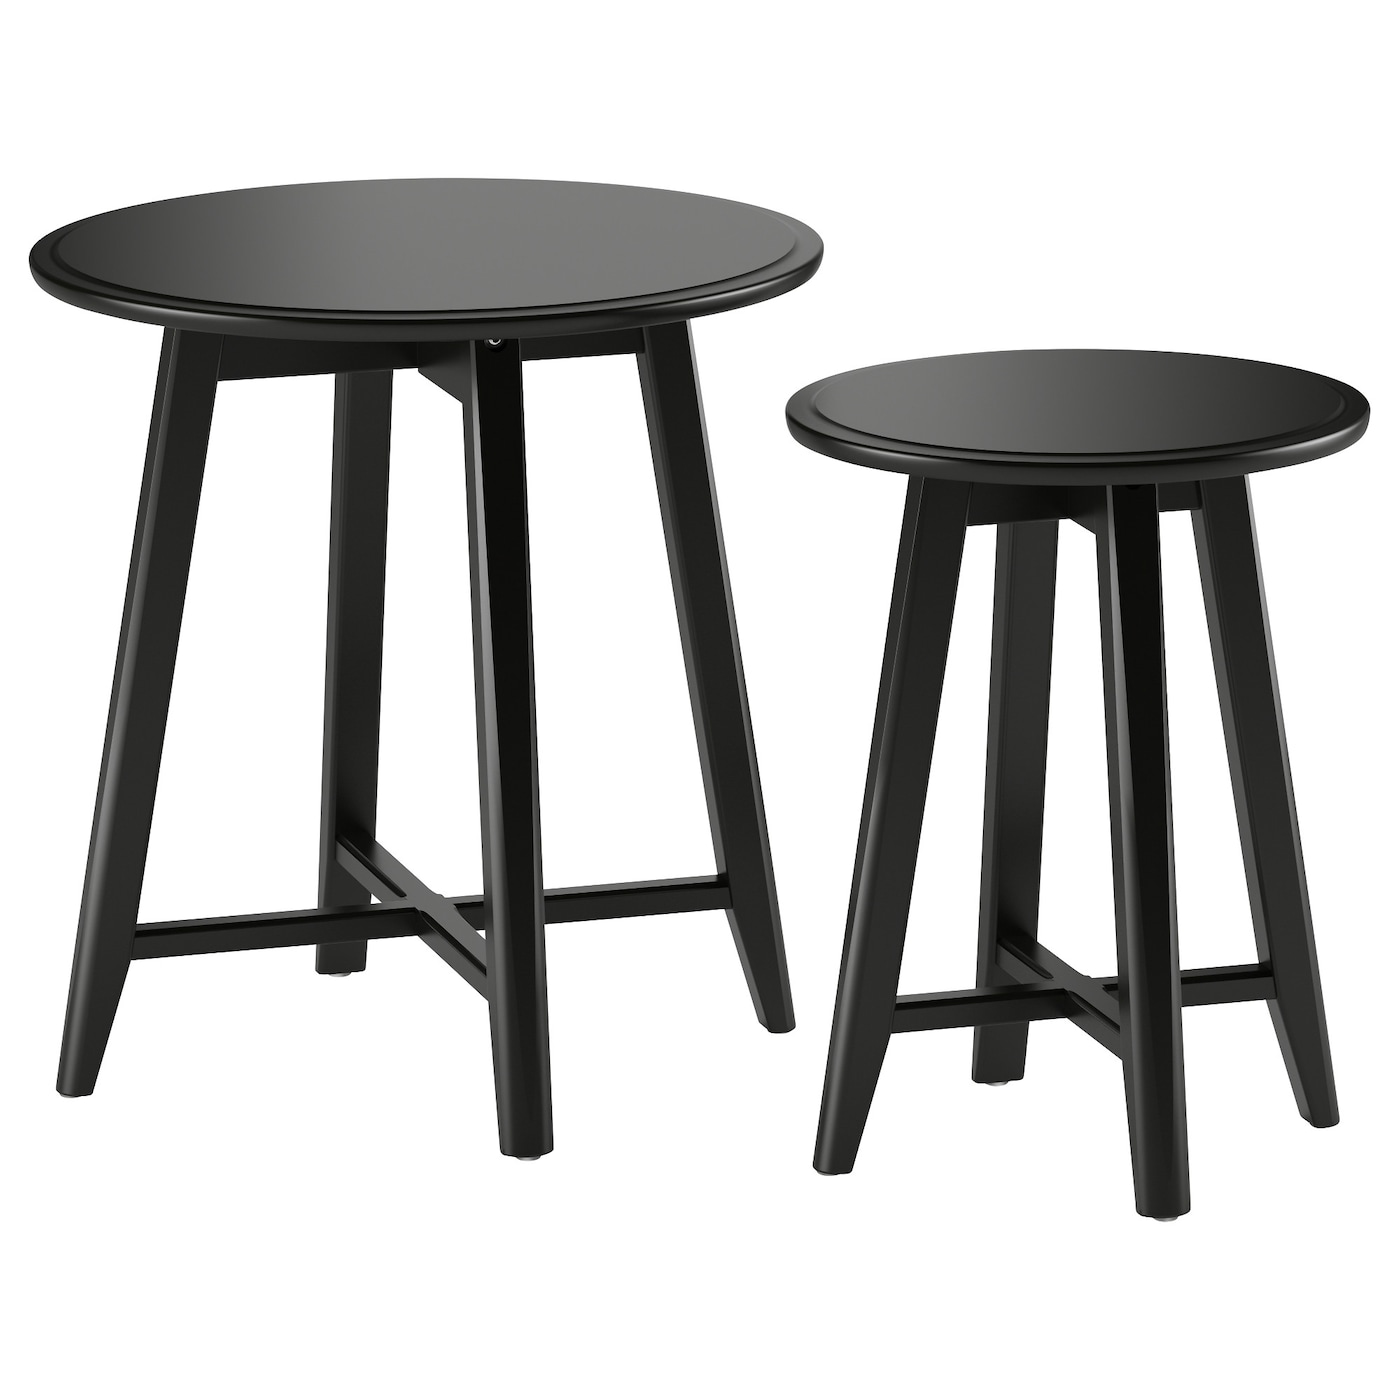 IKEA KRAGSTA nest of tables, set of 2 The included plastic feet protect the floor from scratches.